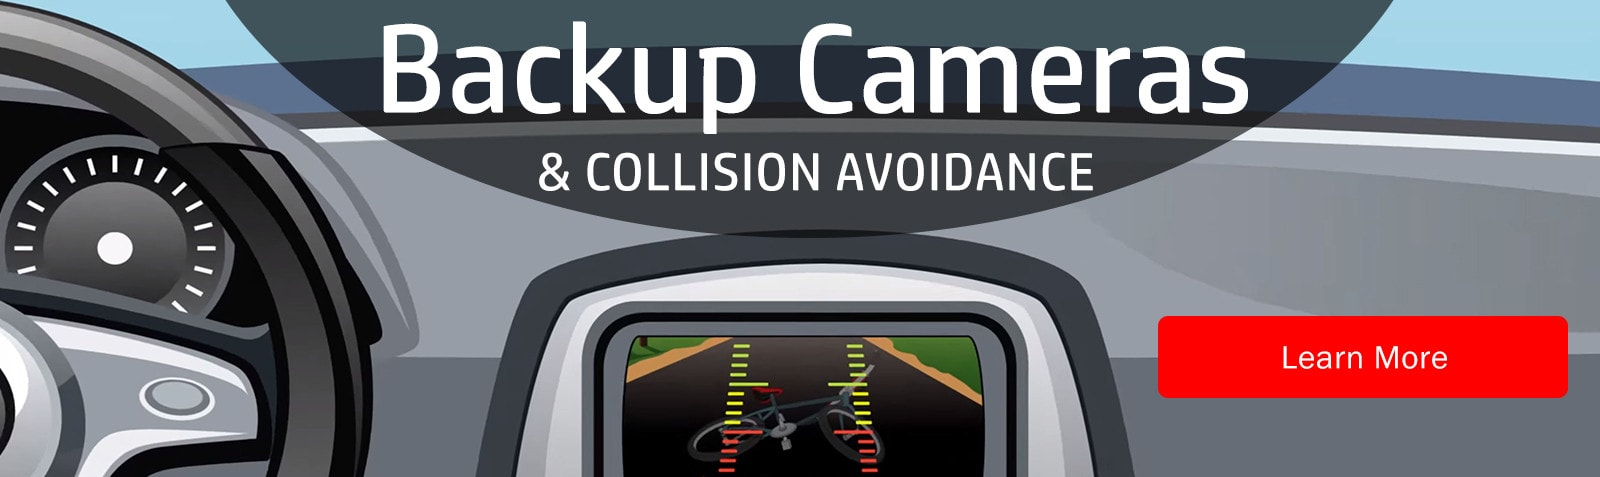 Backup Camera & Collision Avoidance